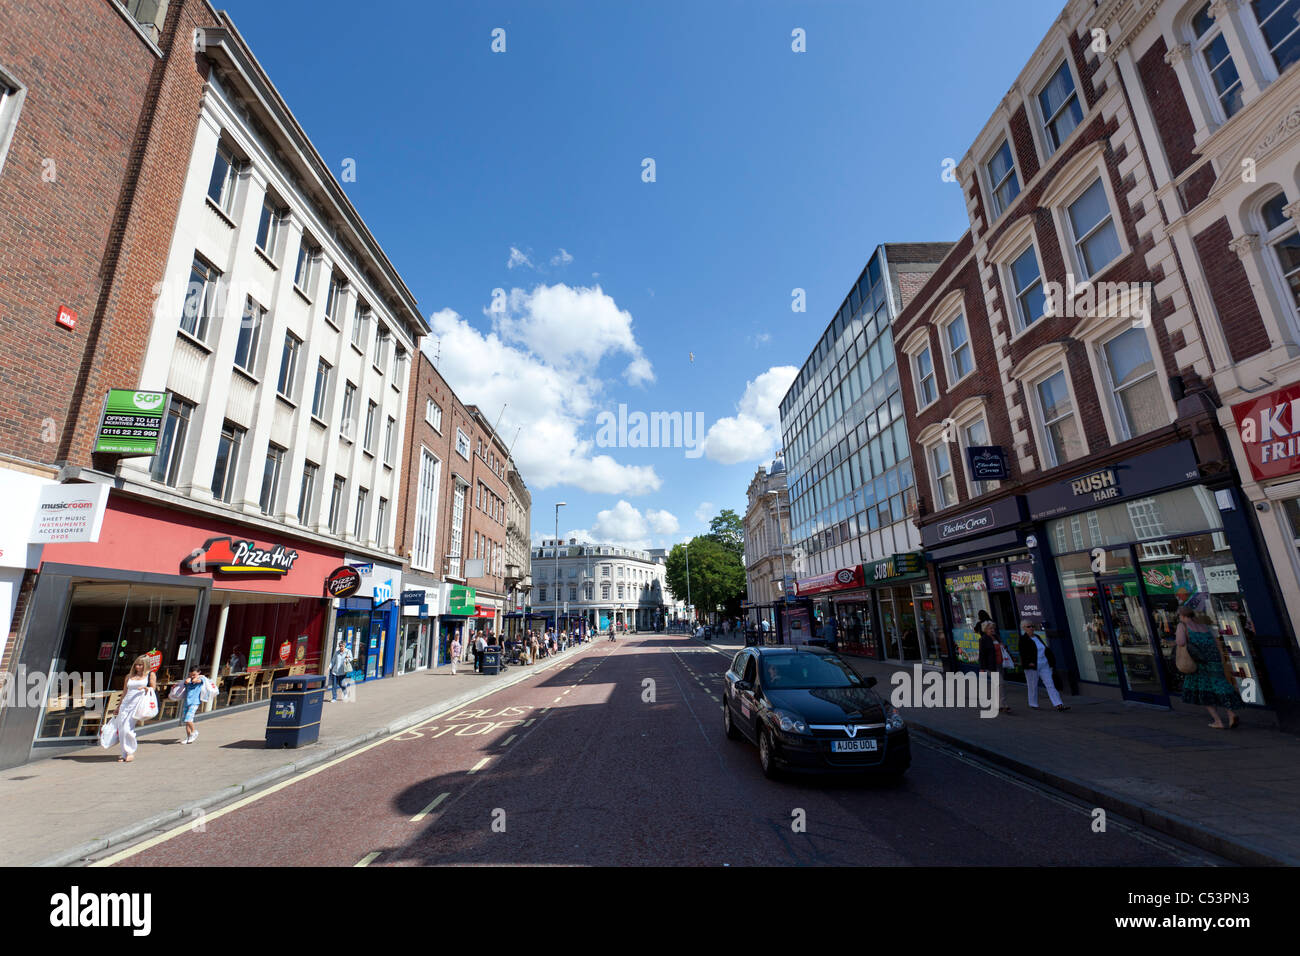 Commercial Road Shopping Street In Portsmouth Stock Photo